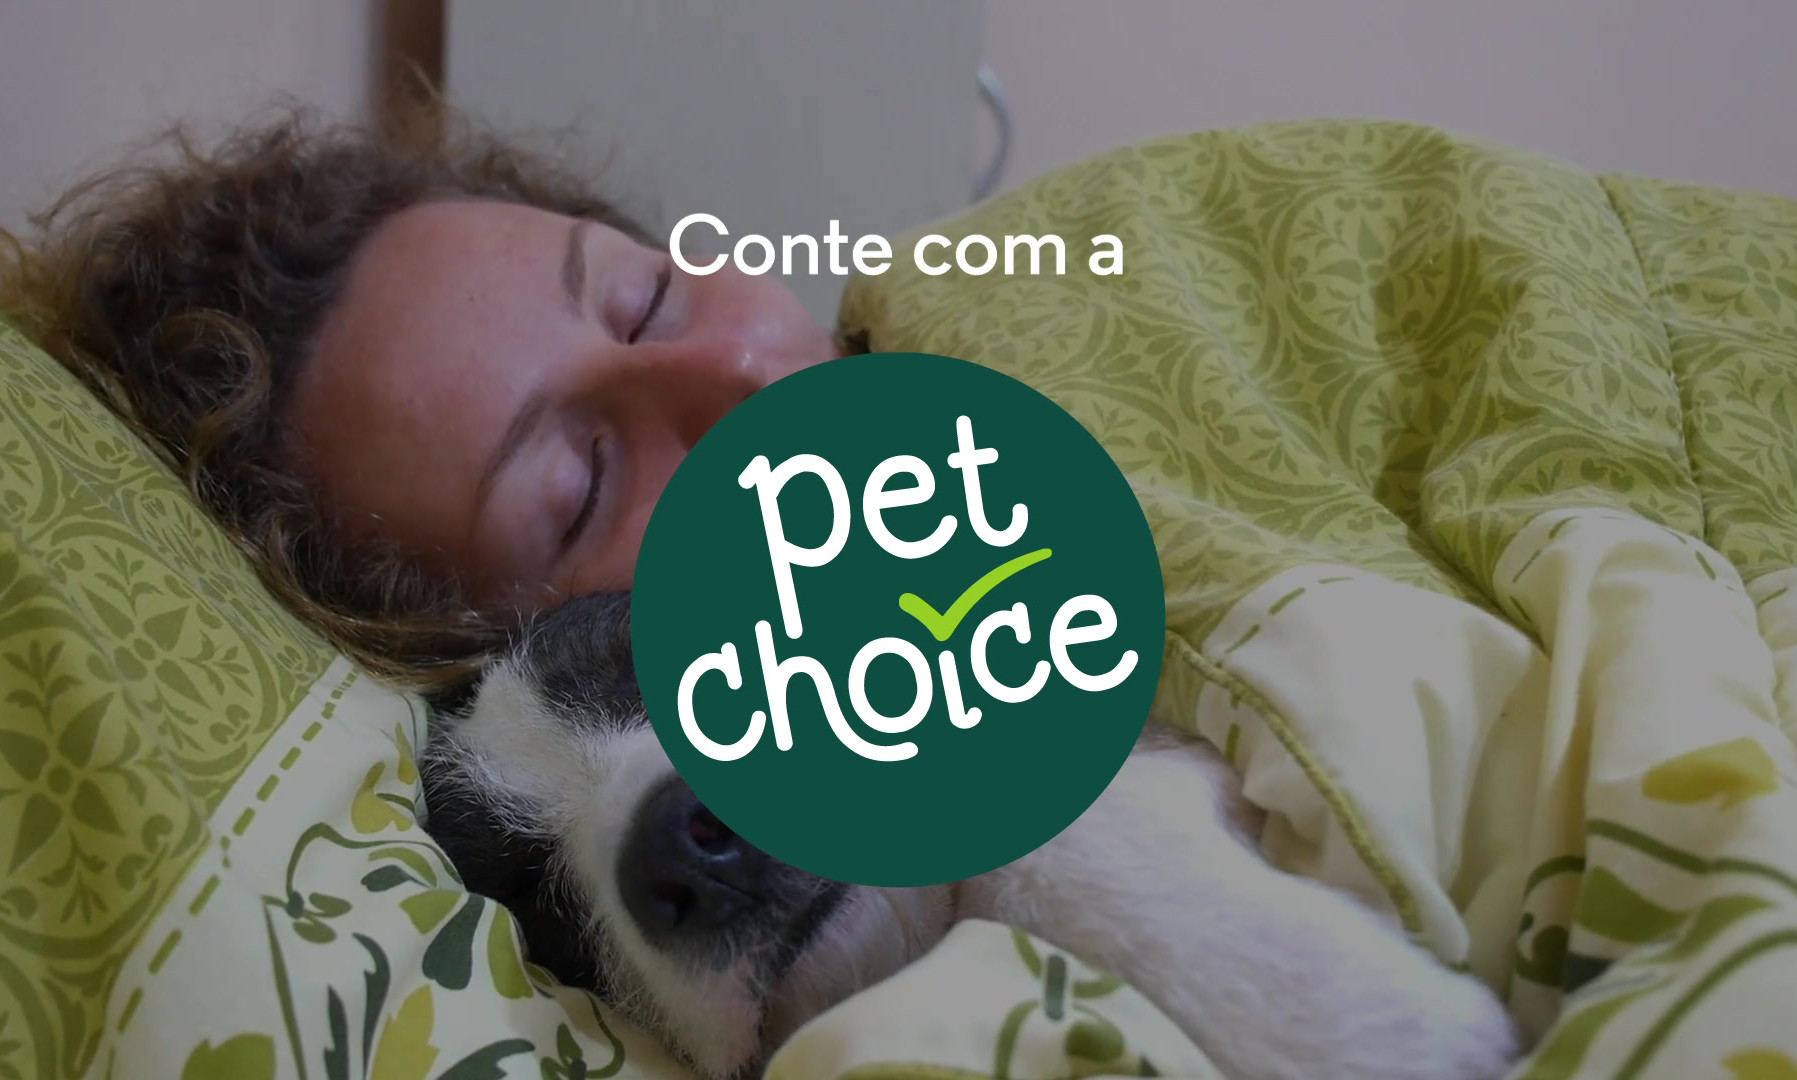 Conte com a PET CHOICE